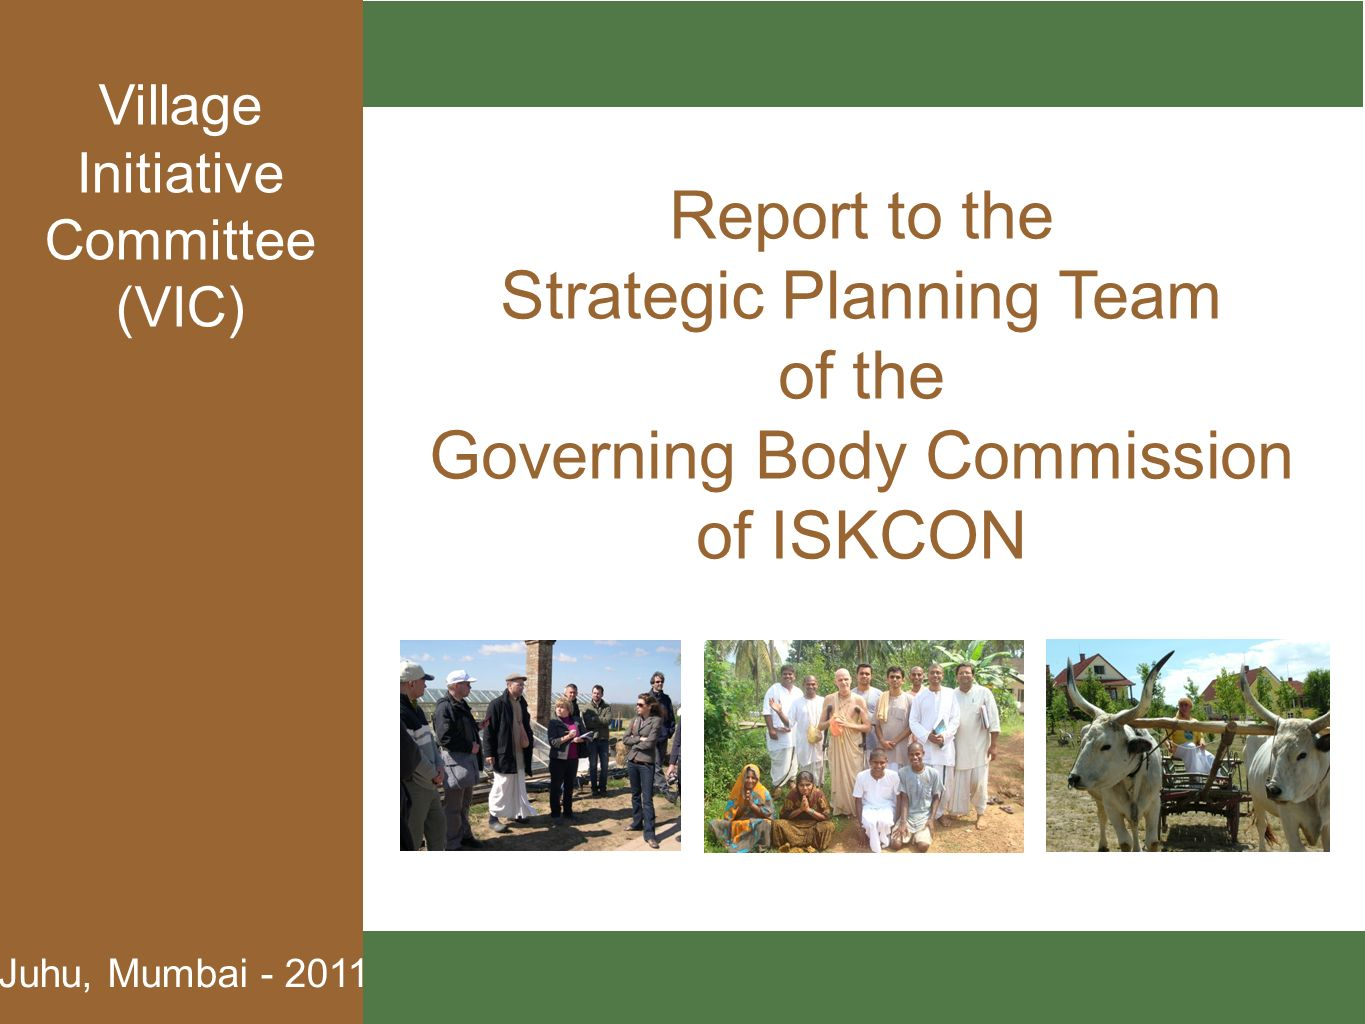 Strategic Planning Team of the Governing Body Commission of ISKCON